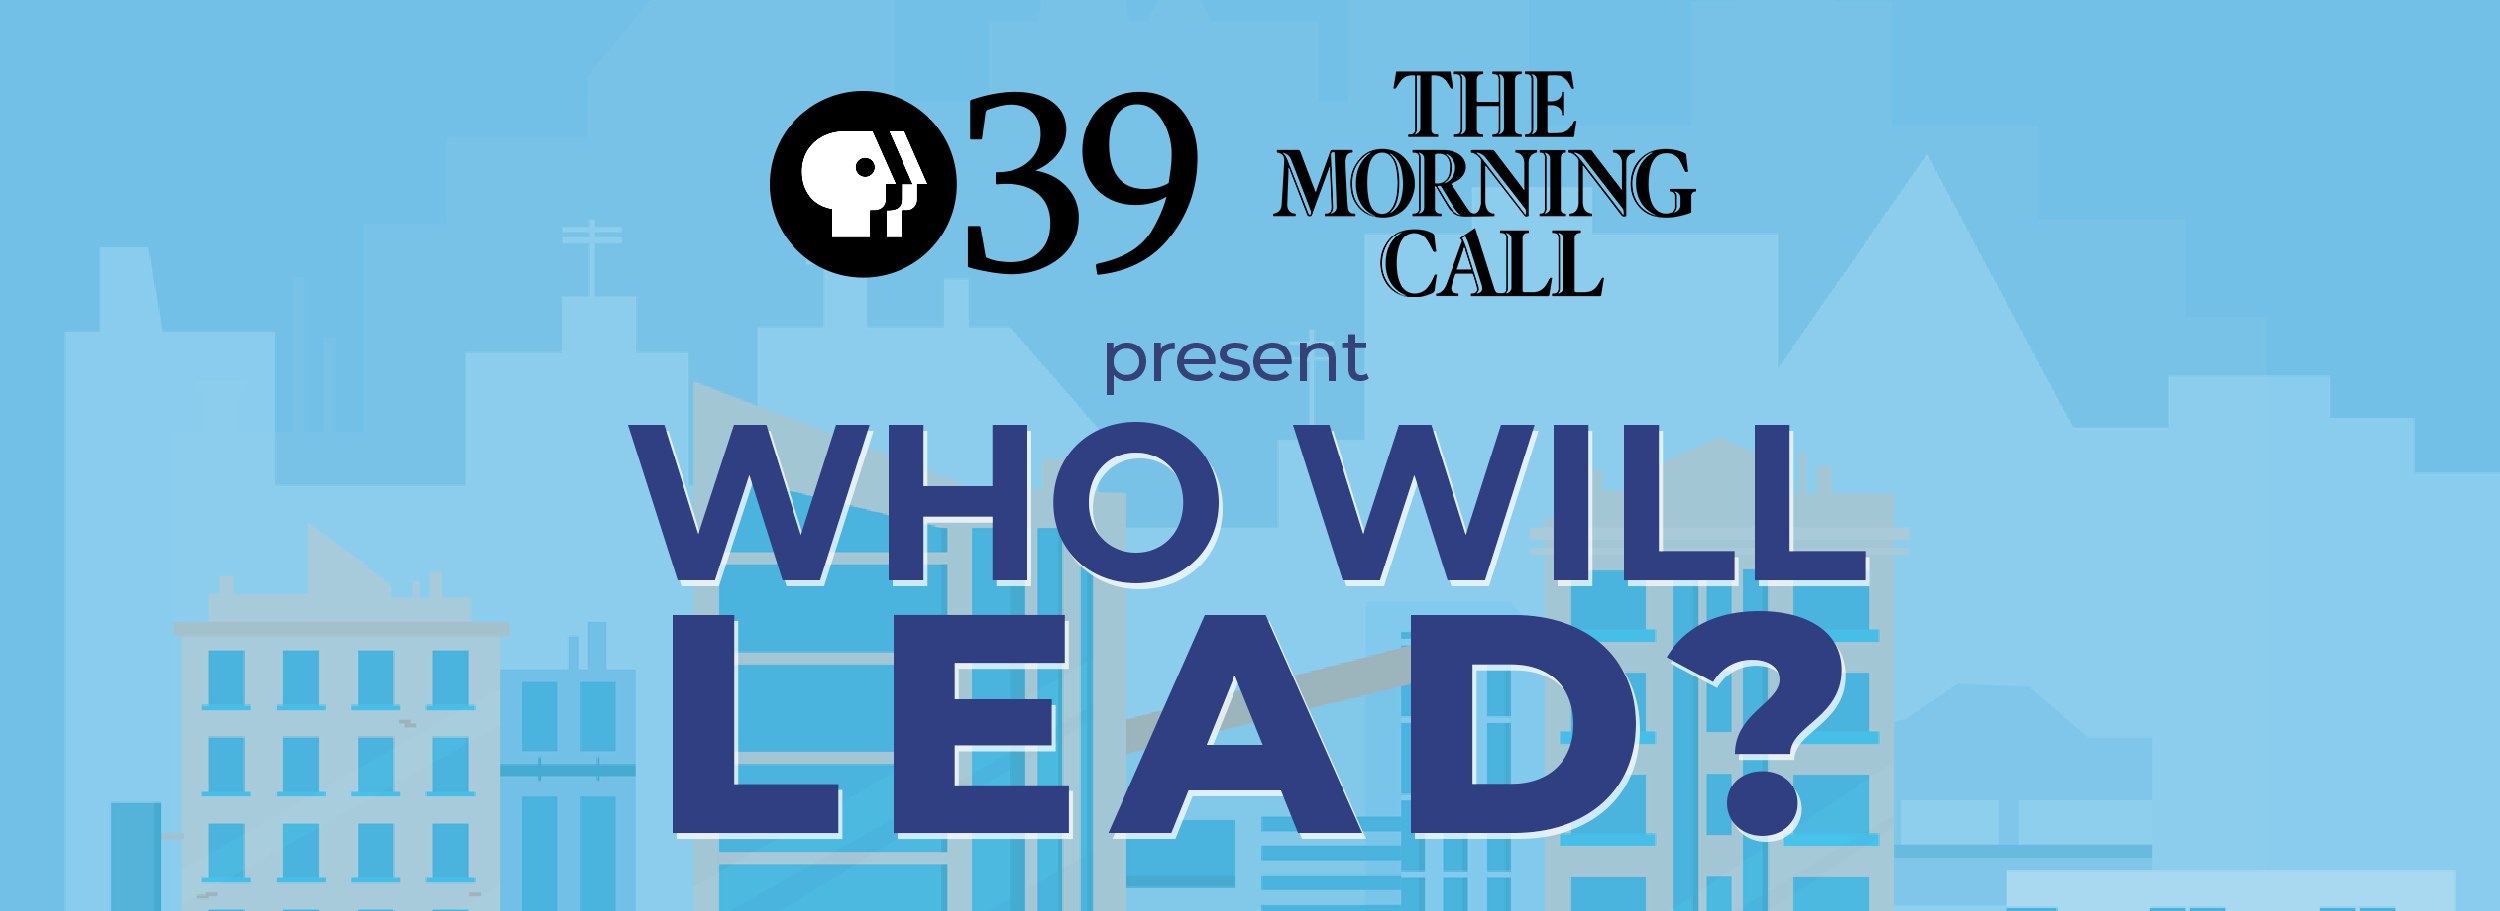 PBS39 and The Morning Call Present Who Will Lead?